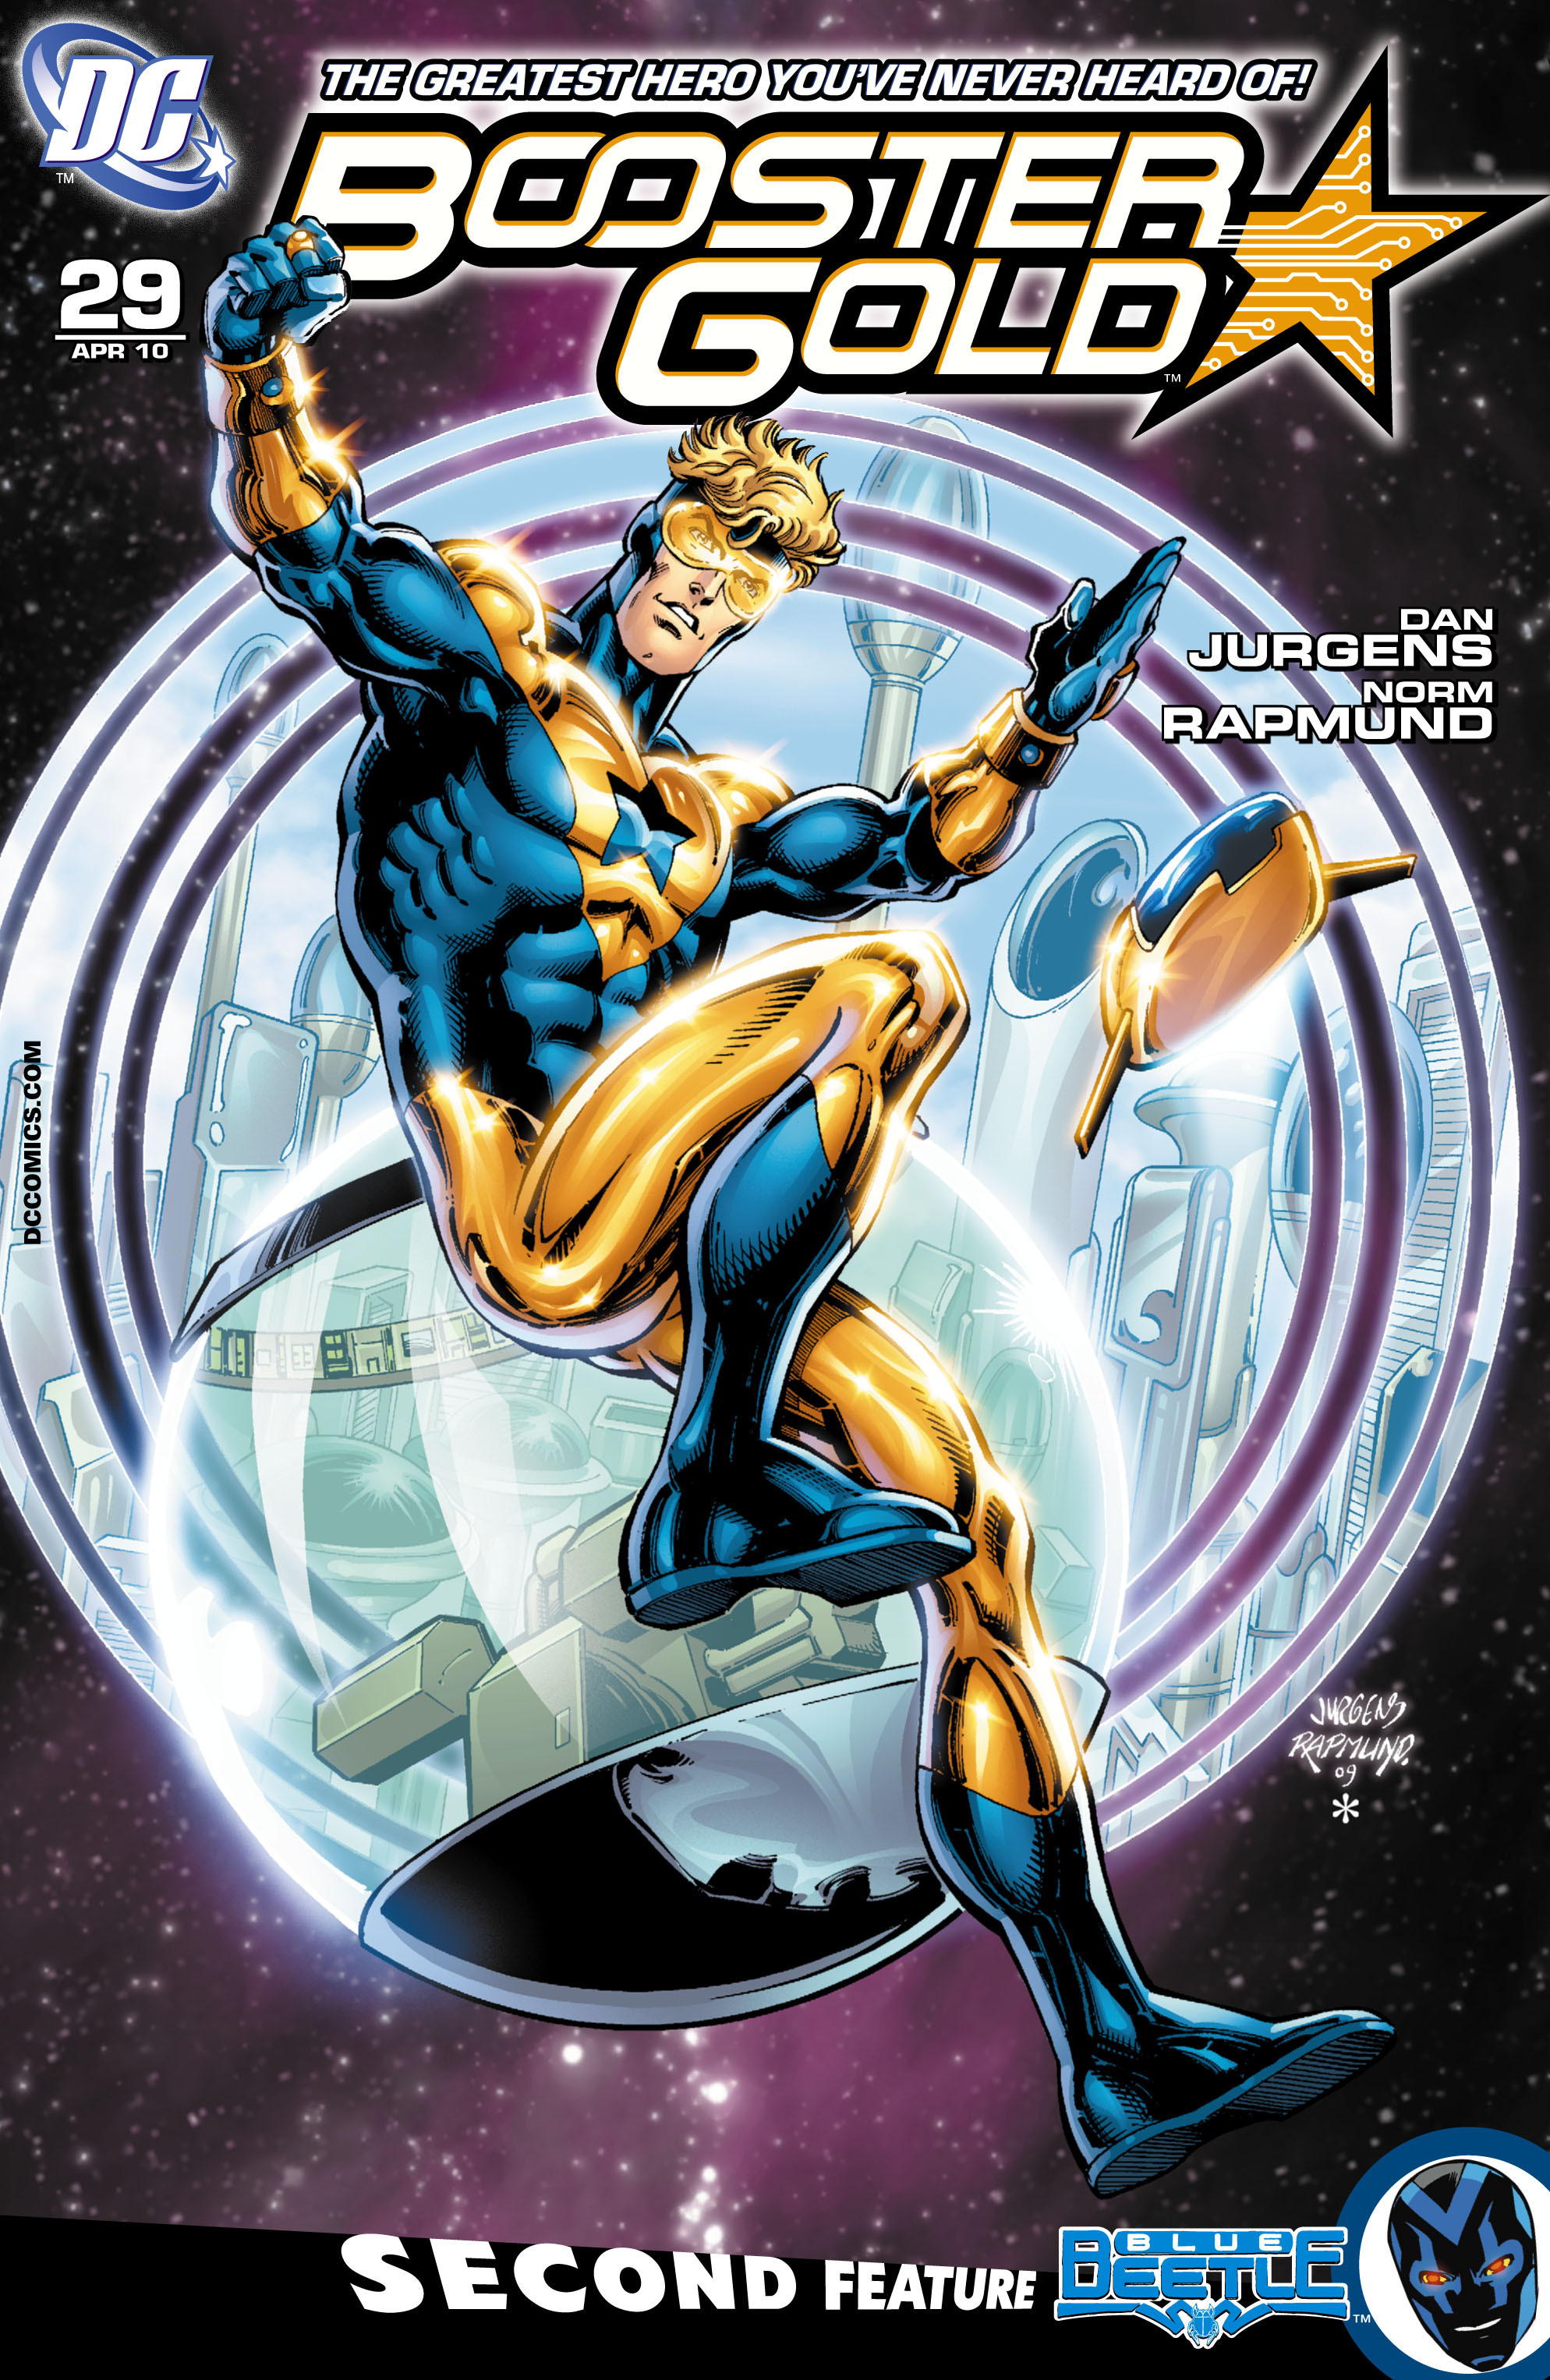 Booster Gold 2007 Issue 29